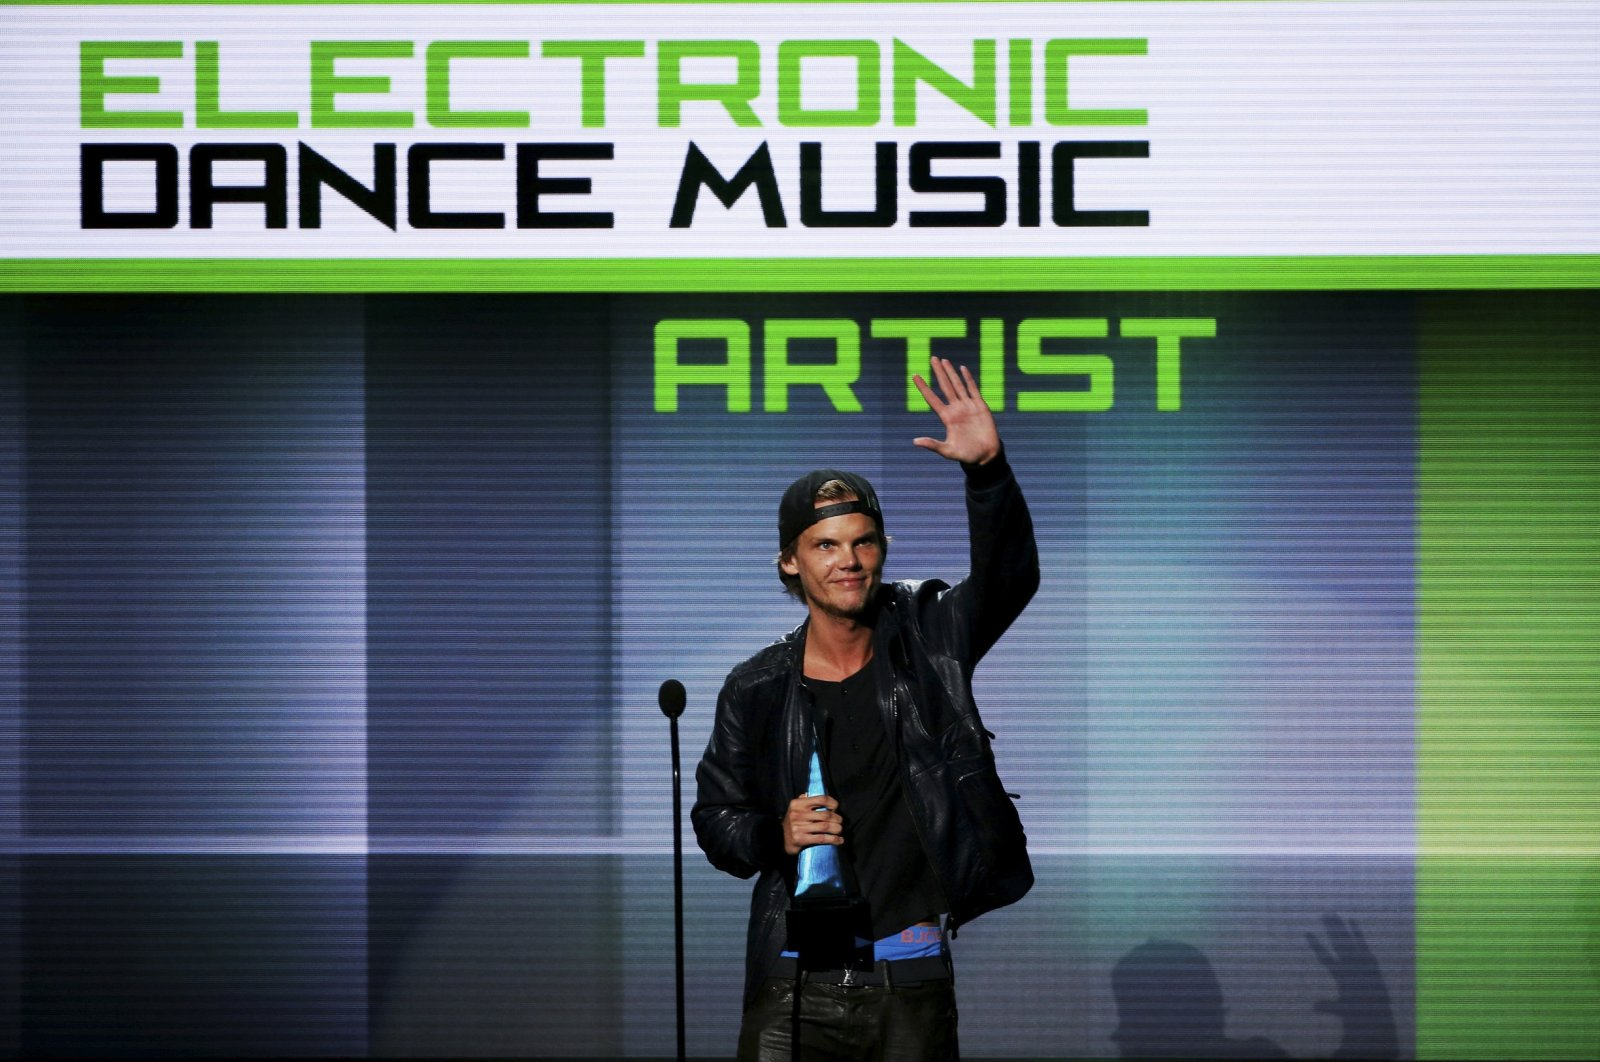 Swedish music artist Avicii accepts the favorite electronic dance music artist award at the 41st American Music Awards in Los Angeles, California, U.S., Nov. 24, 2013.  (REUTERS Photo)